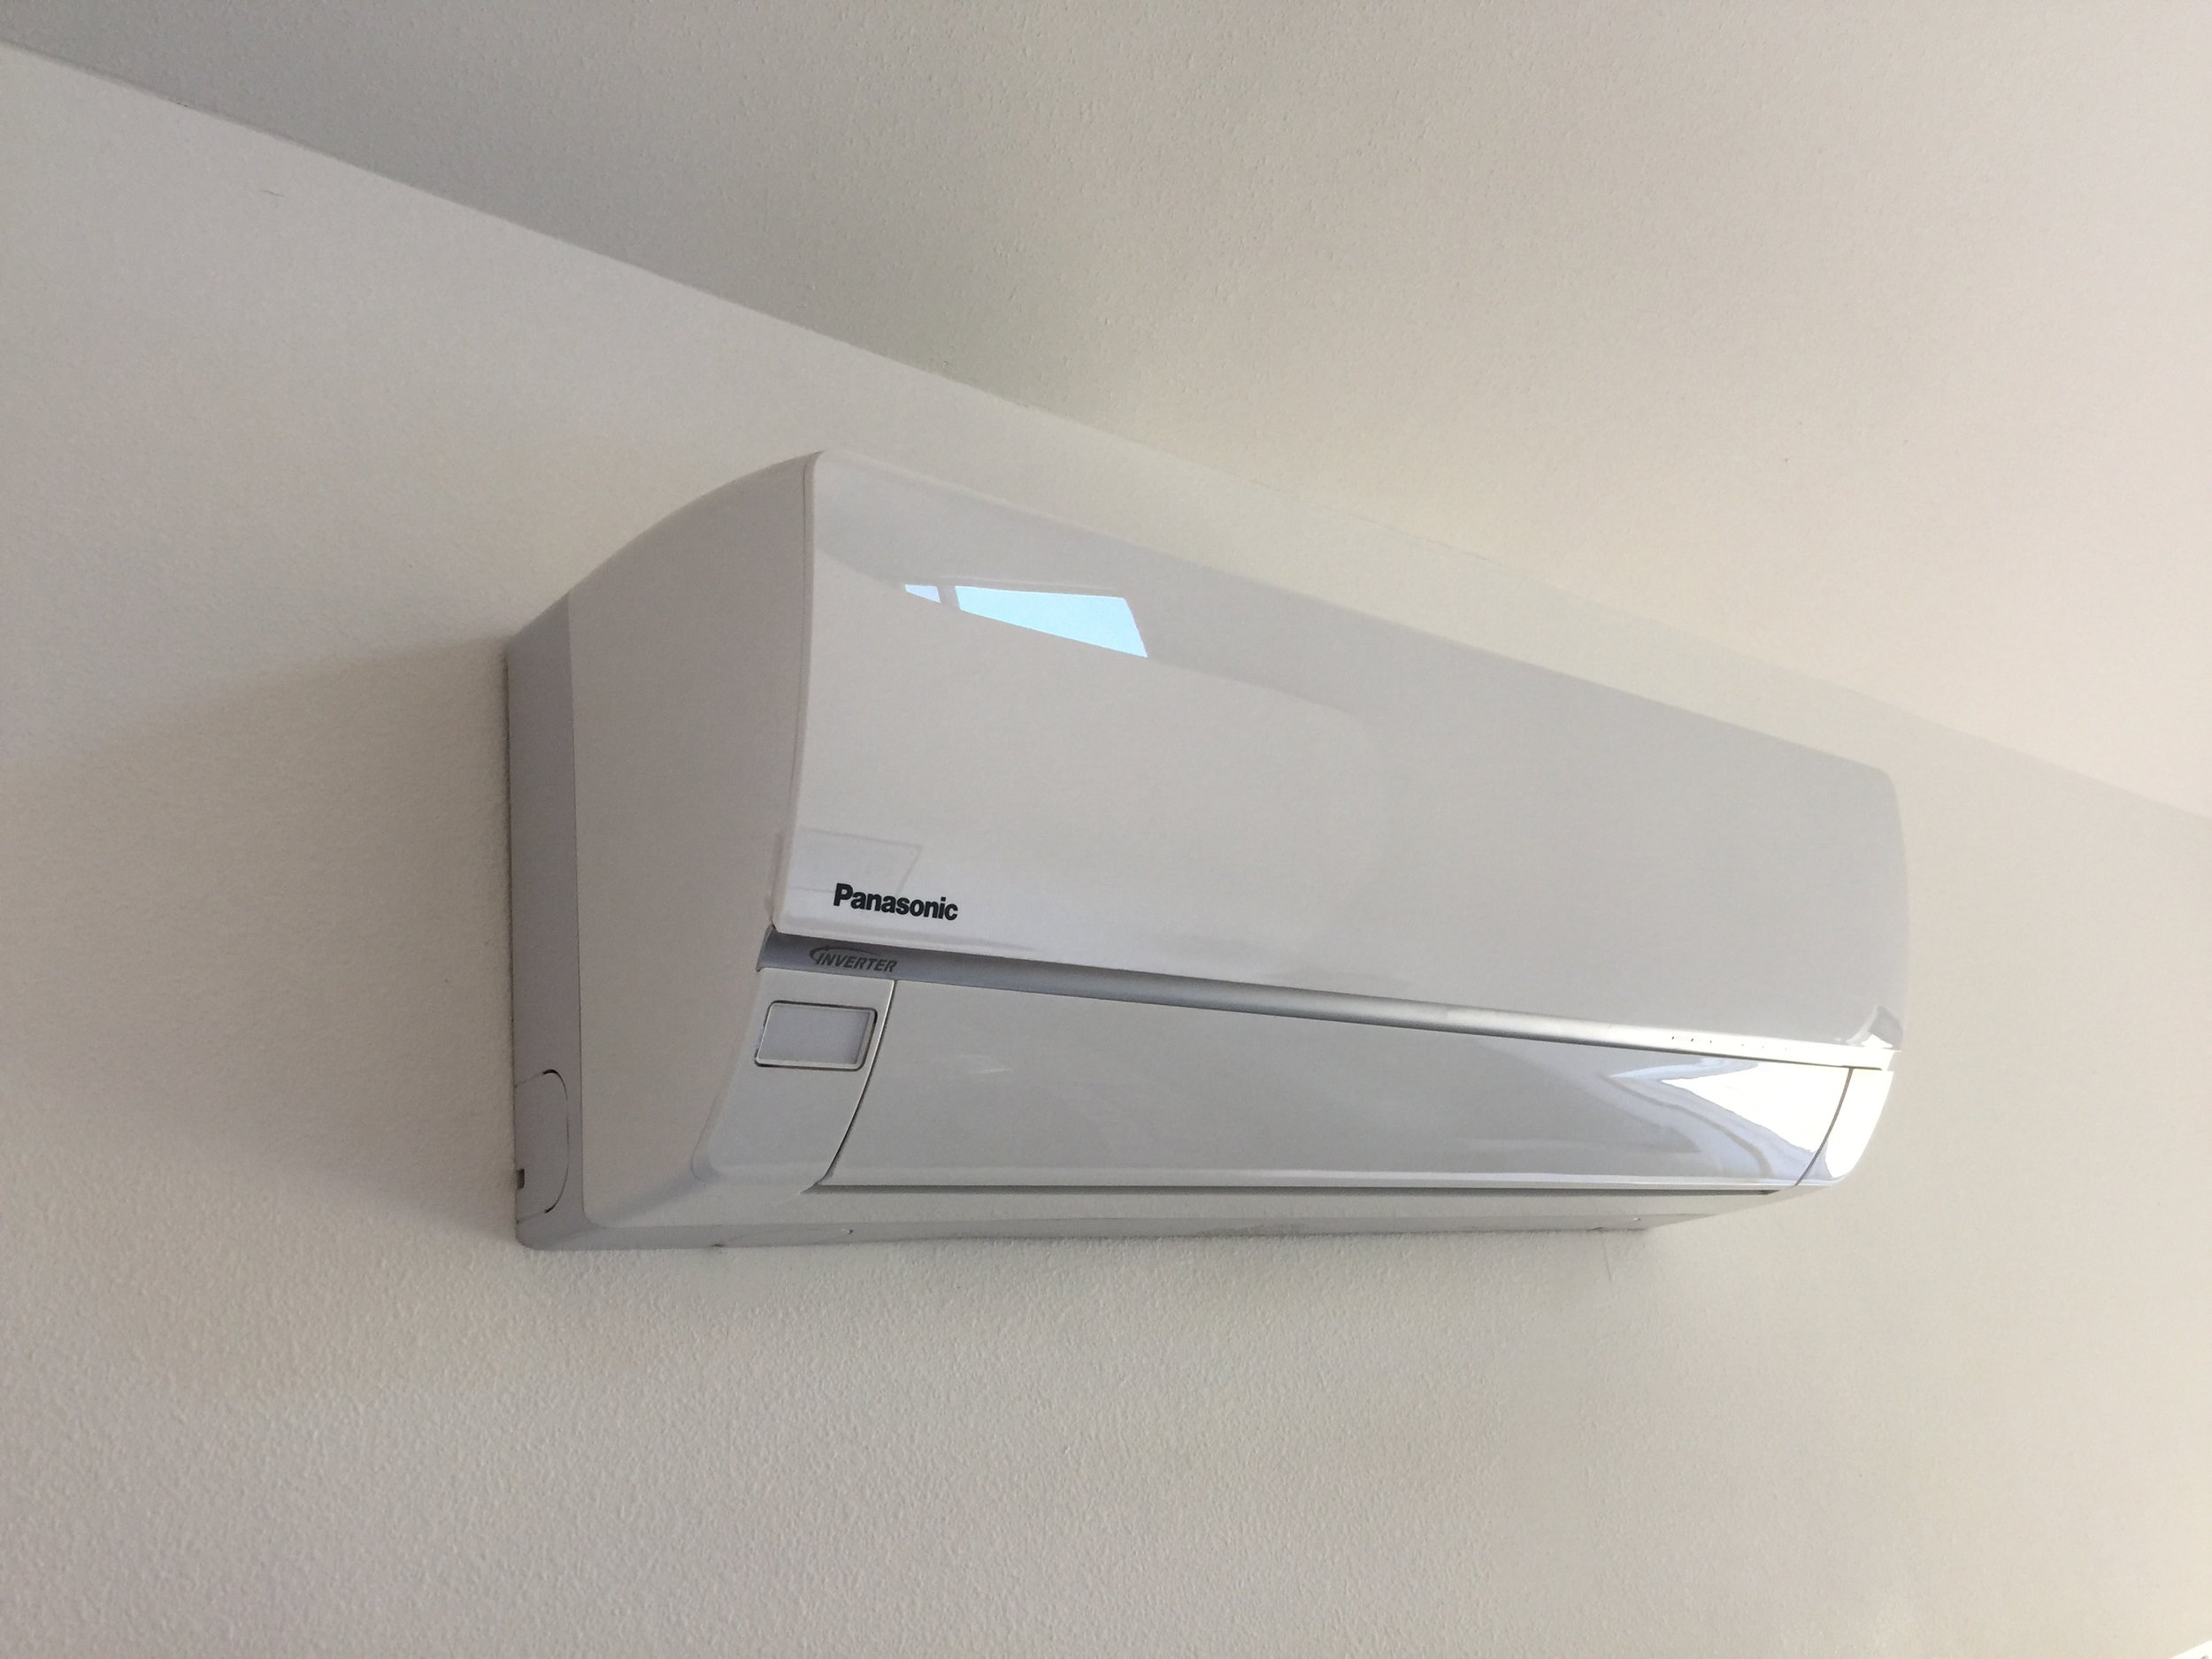 The indoor unit of the Panasonic Exterios Heat Pump. Some people are bothered by seeing these on their walls, but I think they look rather sleek and futuristic.